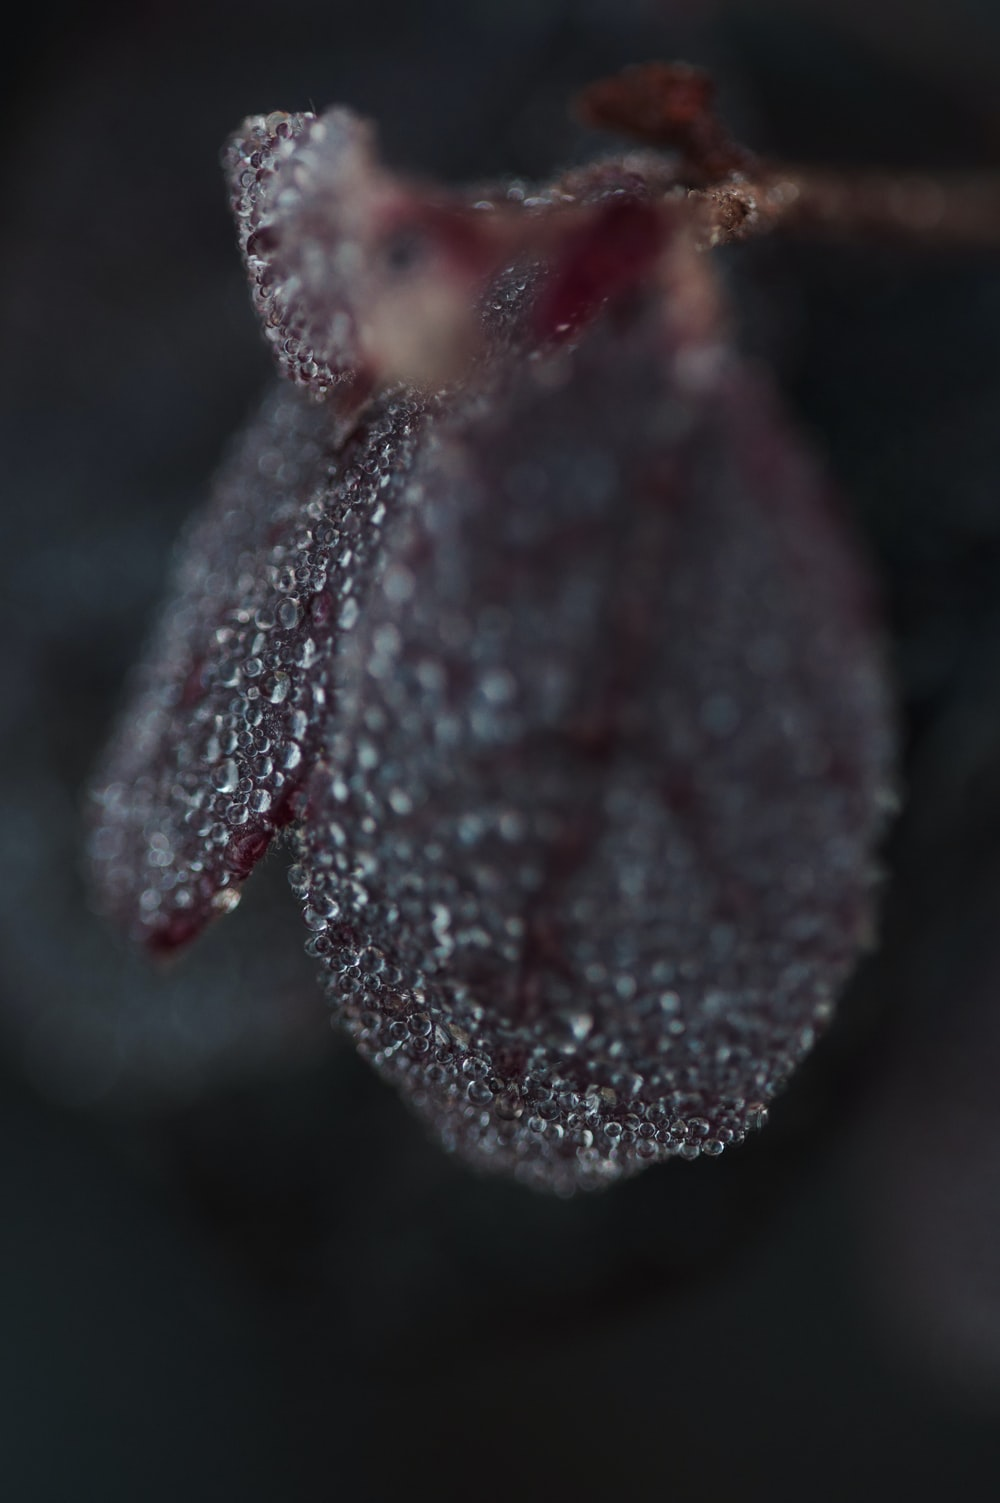 red and white flower bud in close up photography